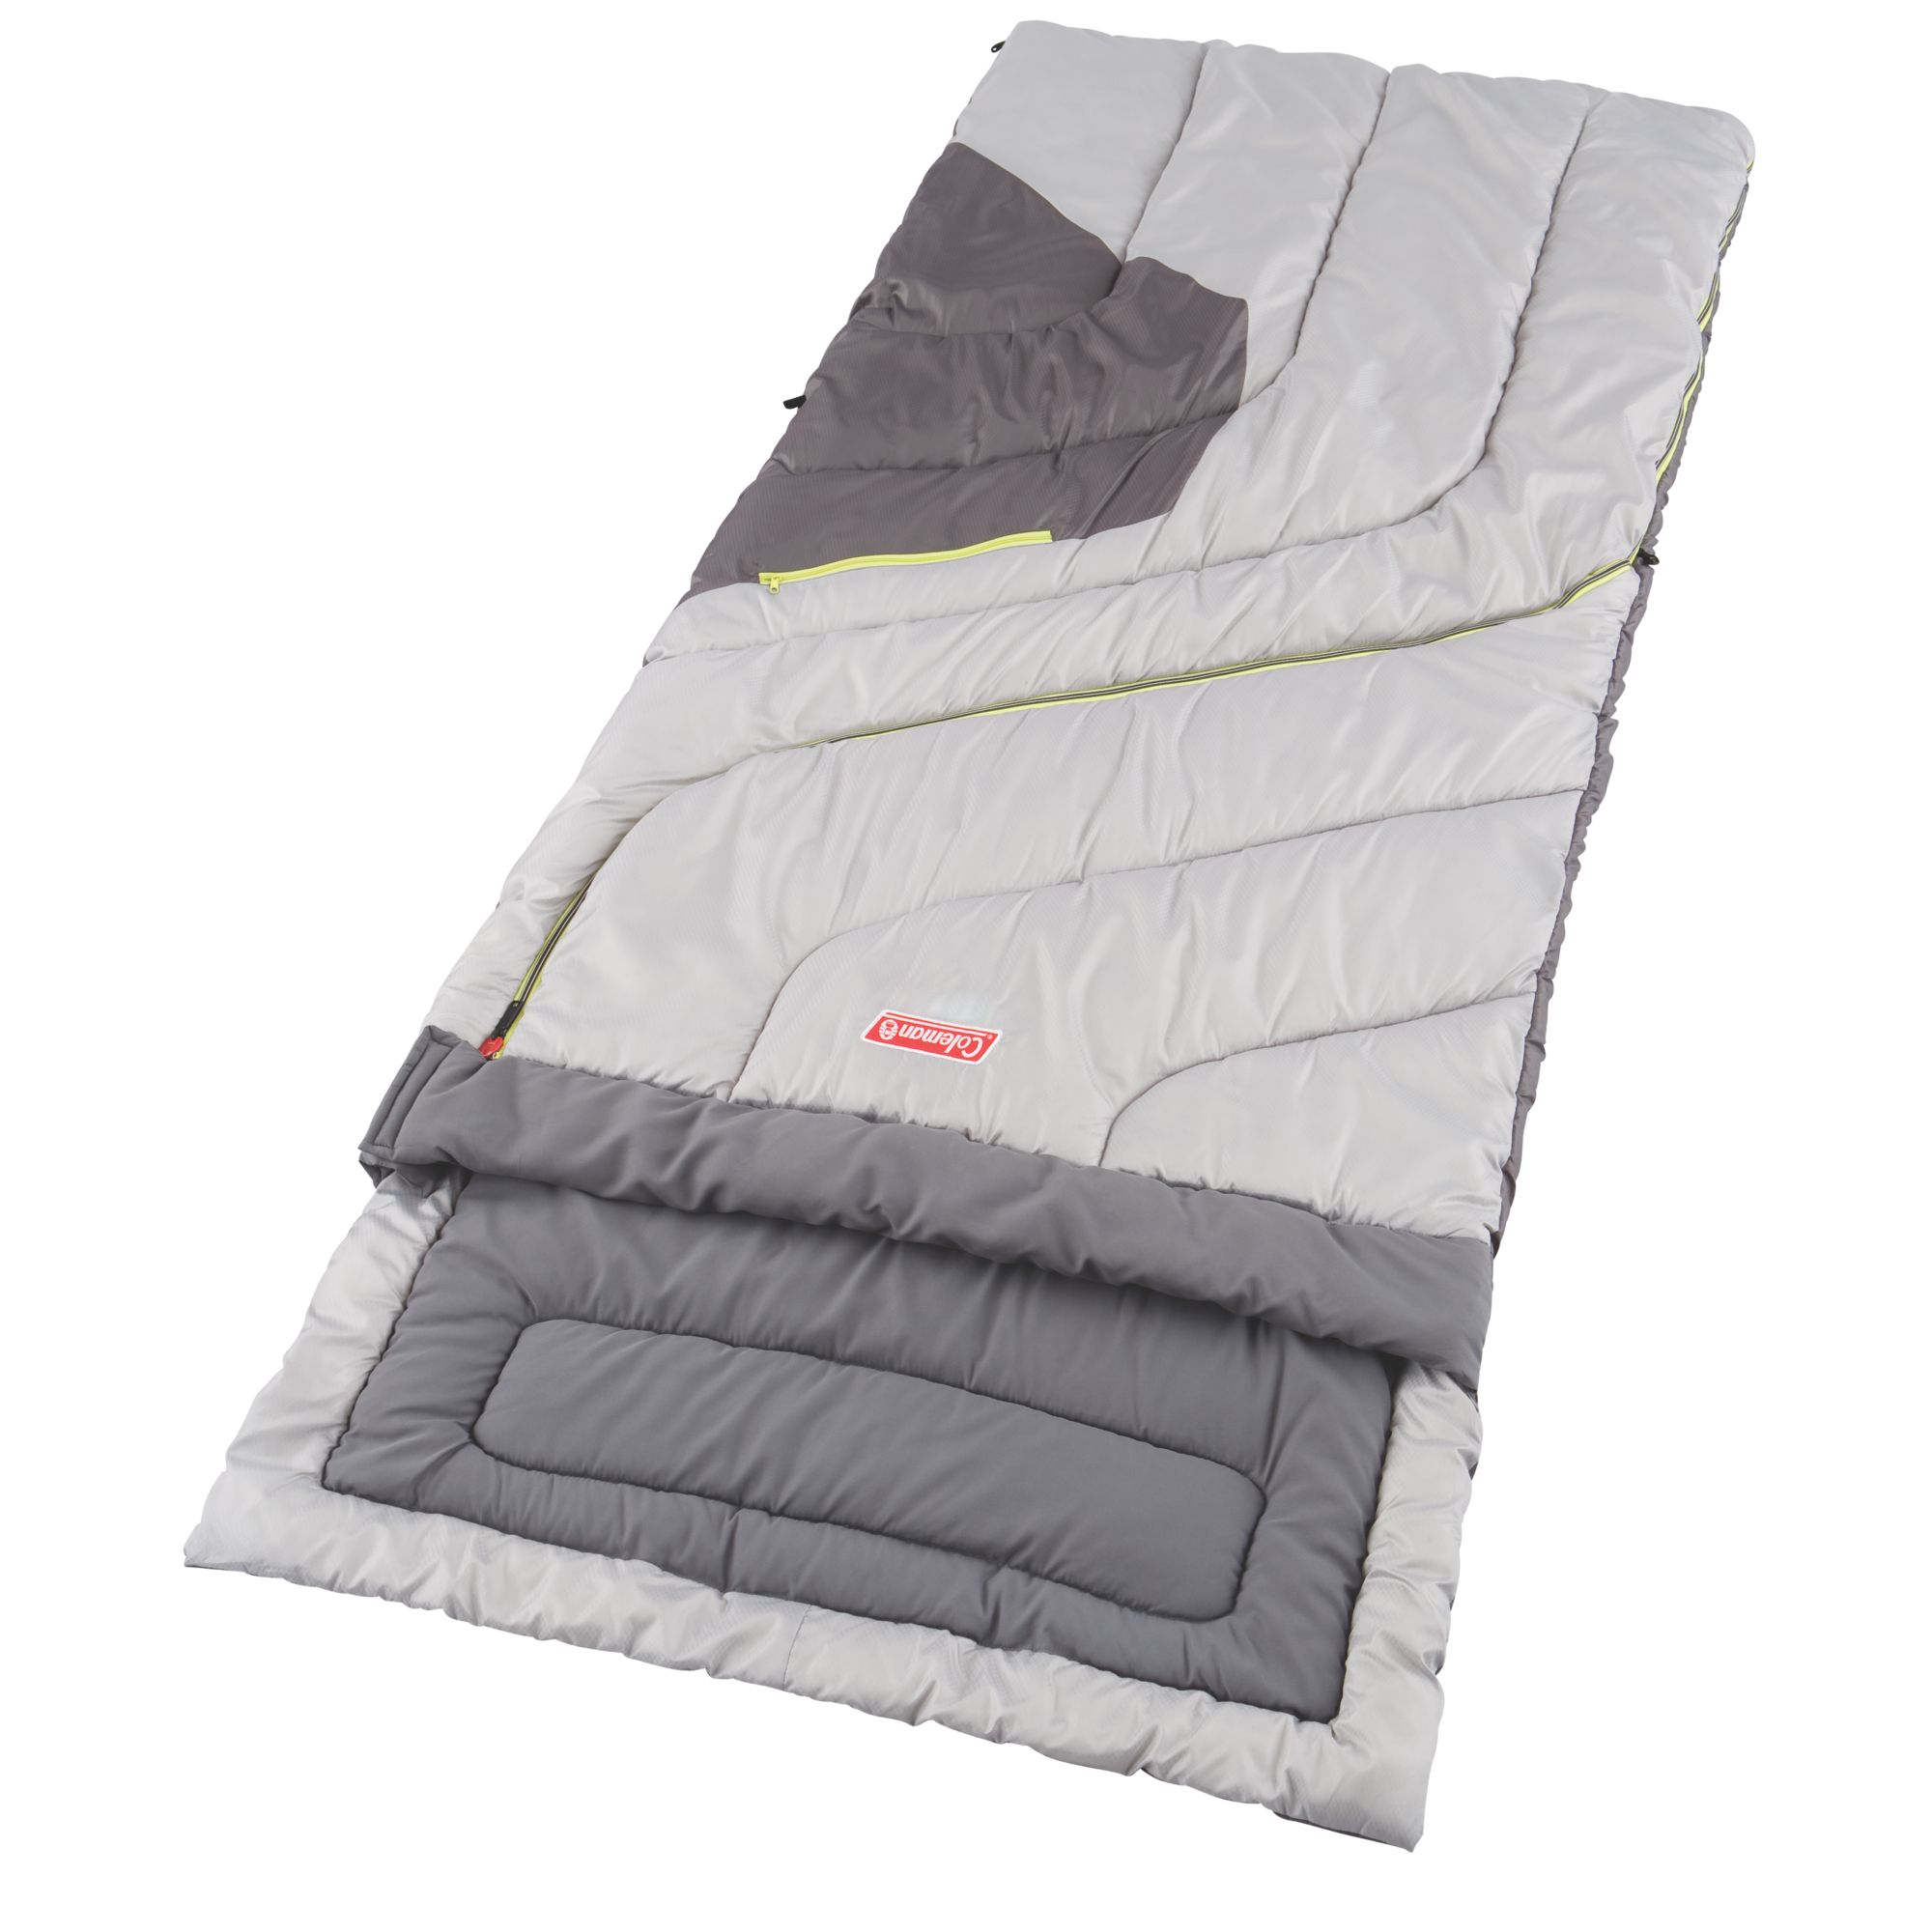 huge discount cc0ec 78454 Adjustable Comfort Adult Sleeping Bag | Coleman